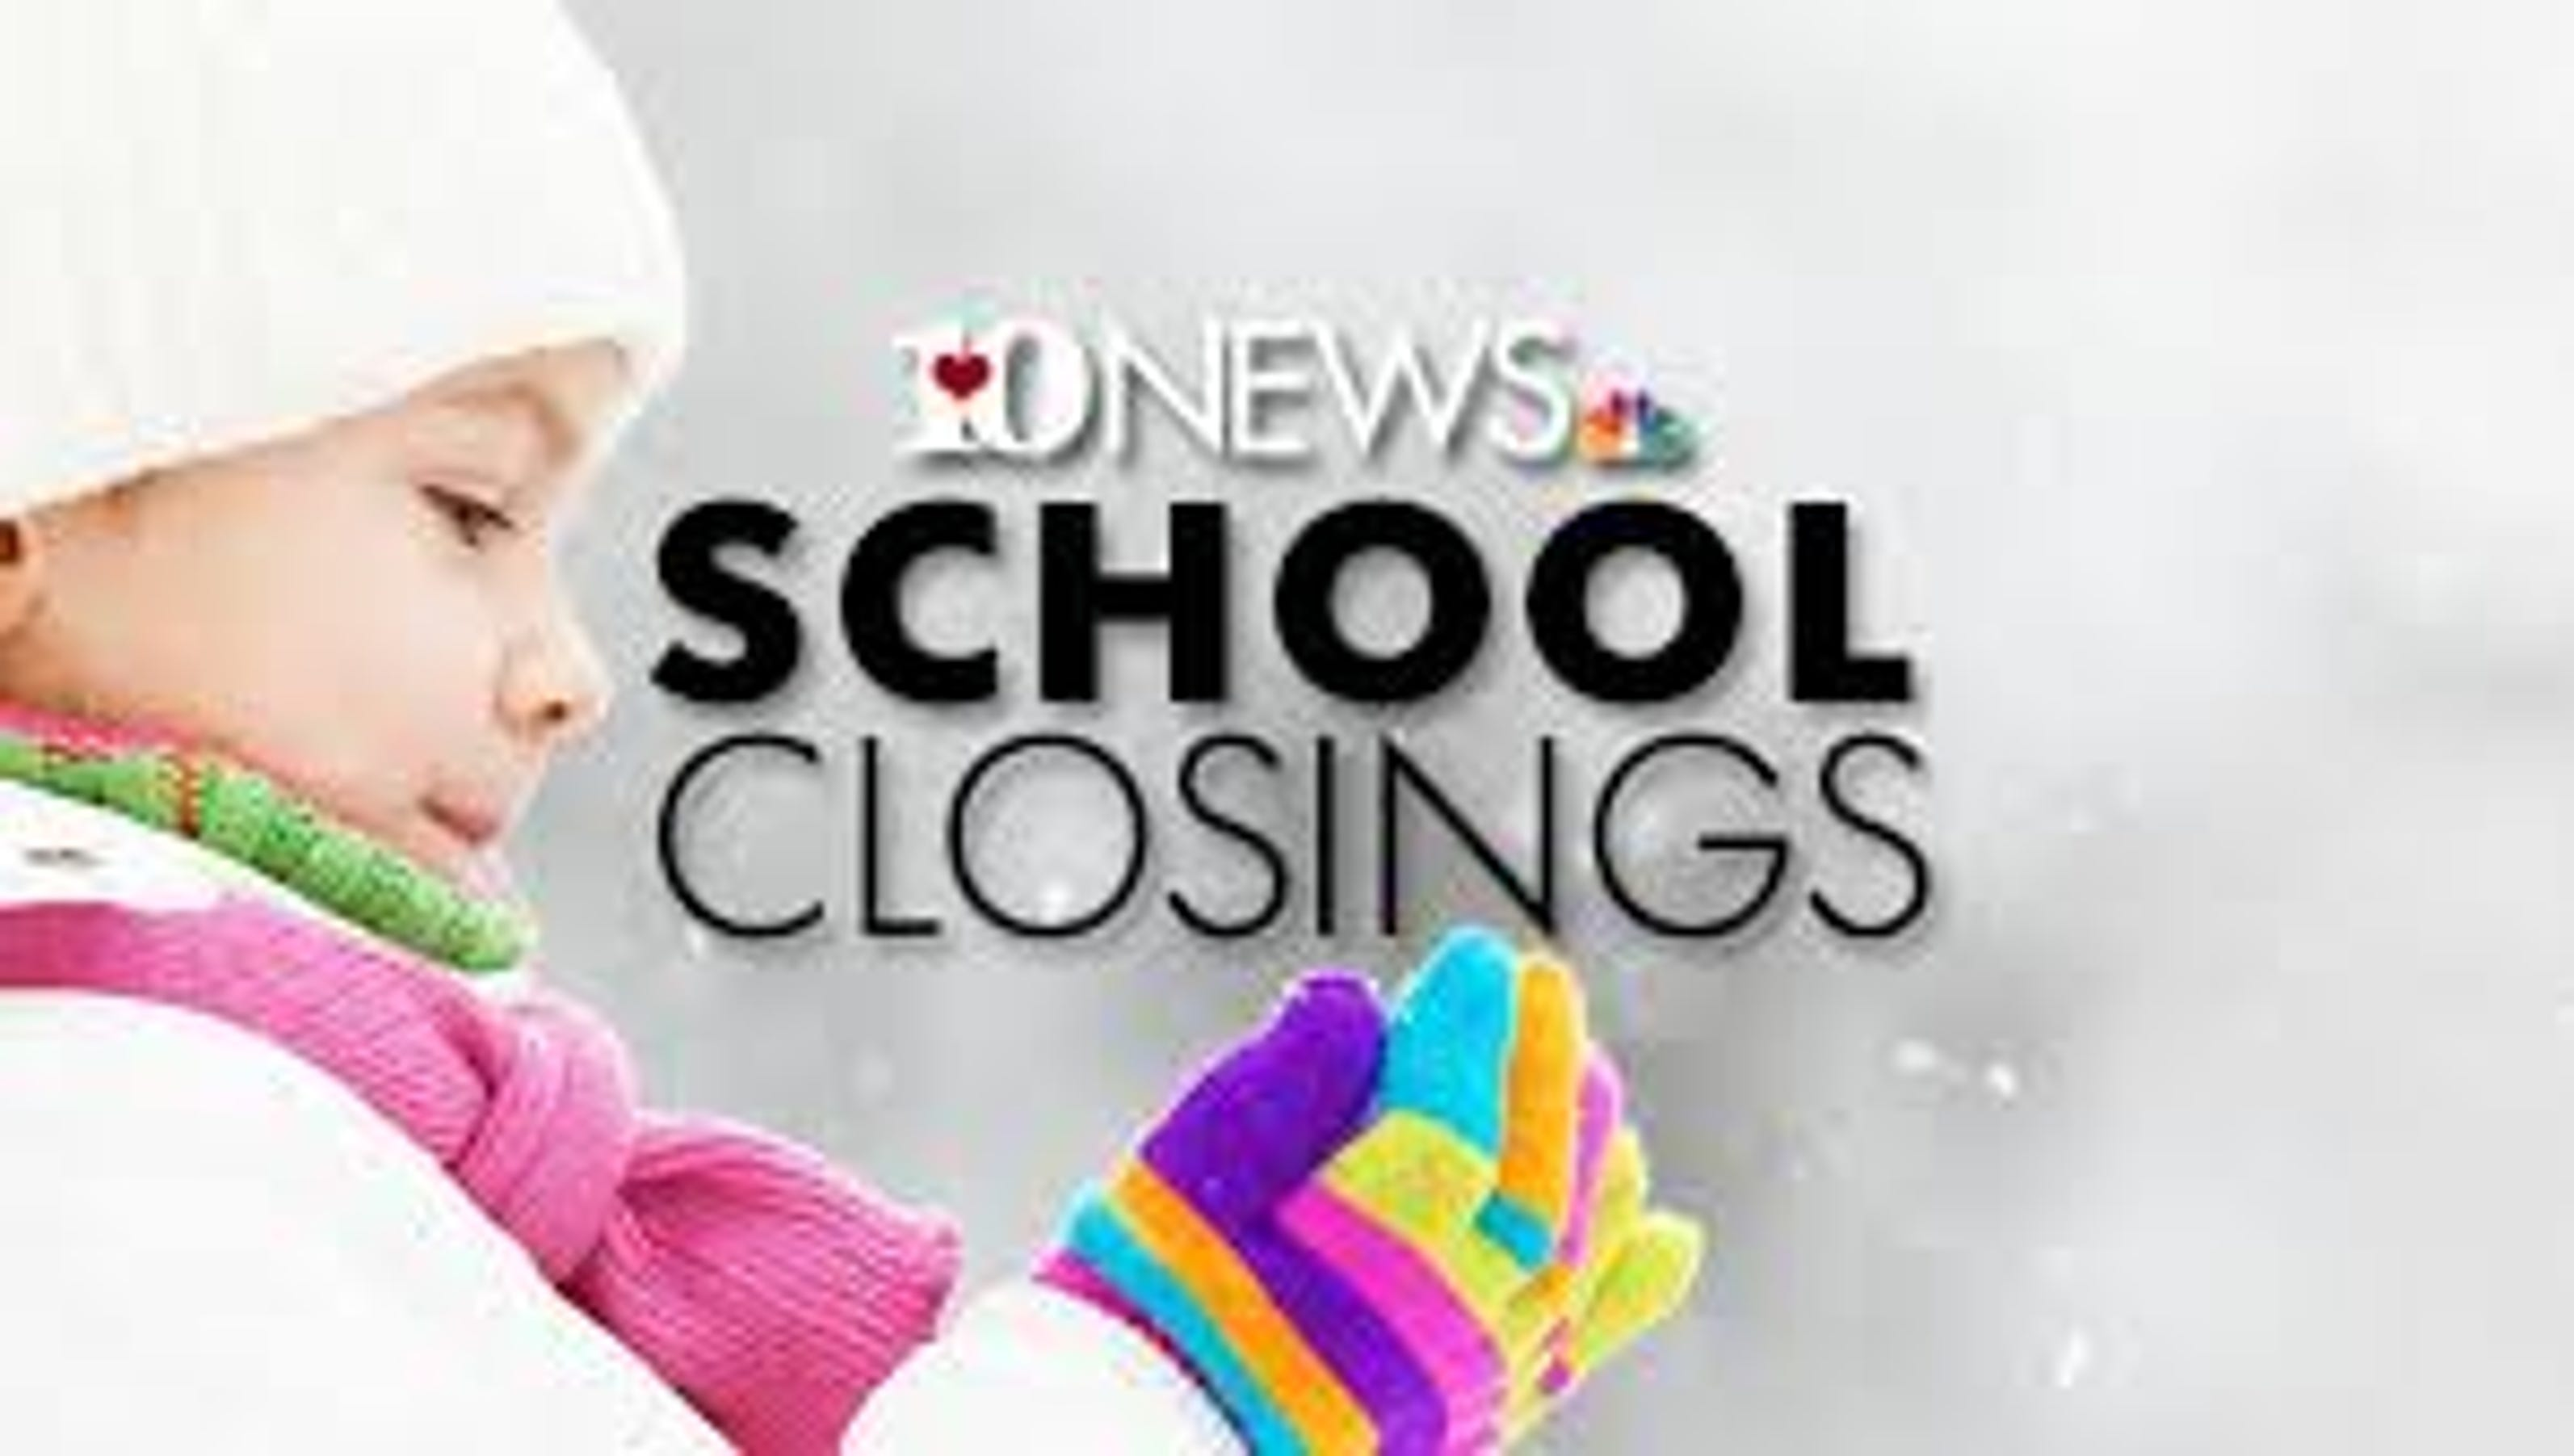 Dozens of school systems closed due to inclement weather